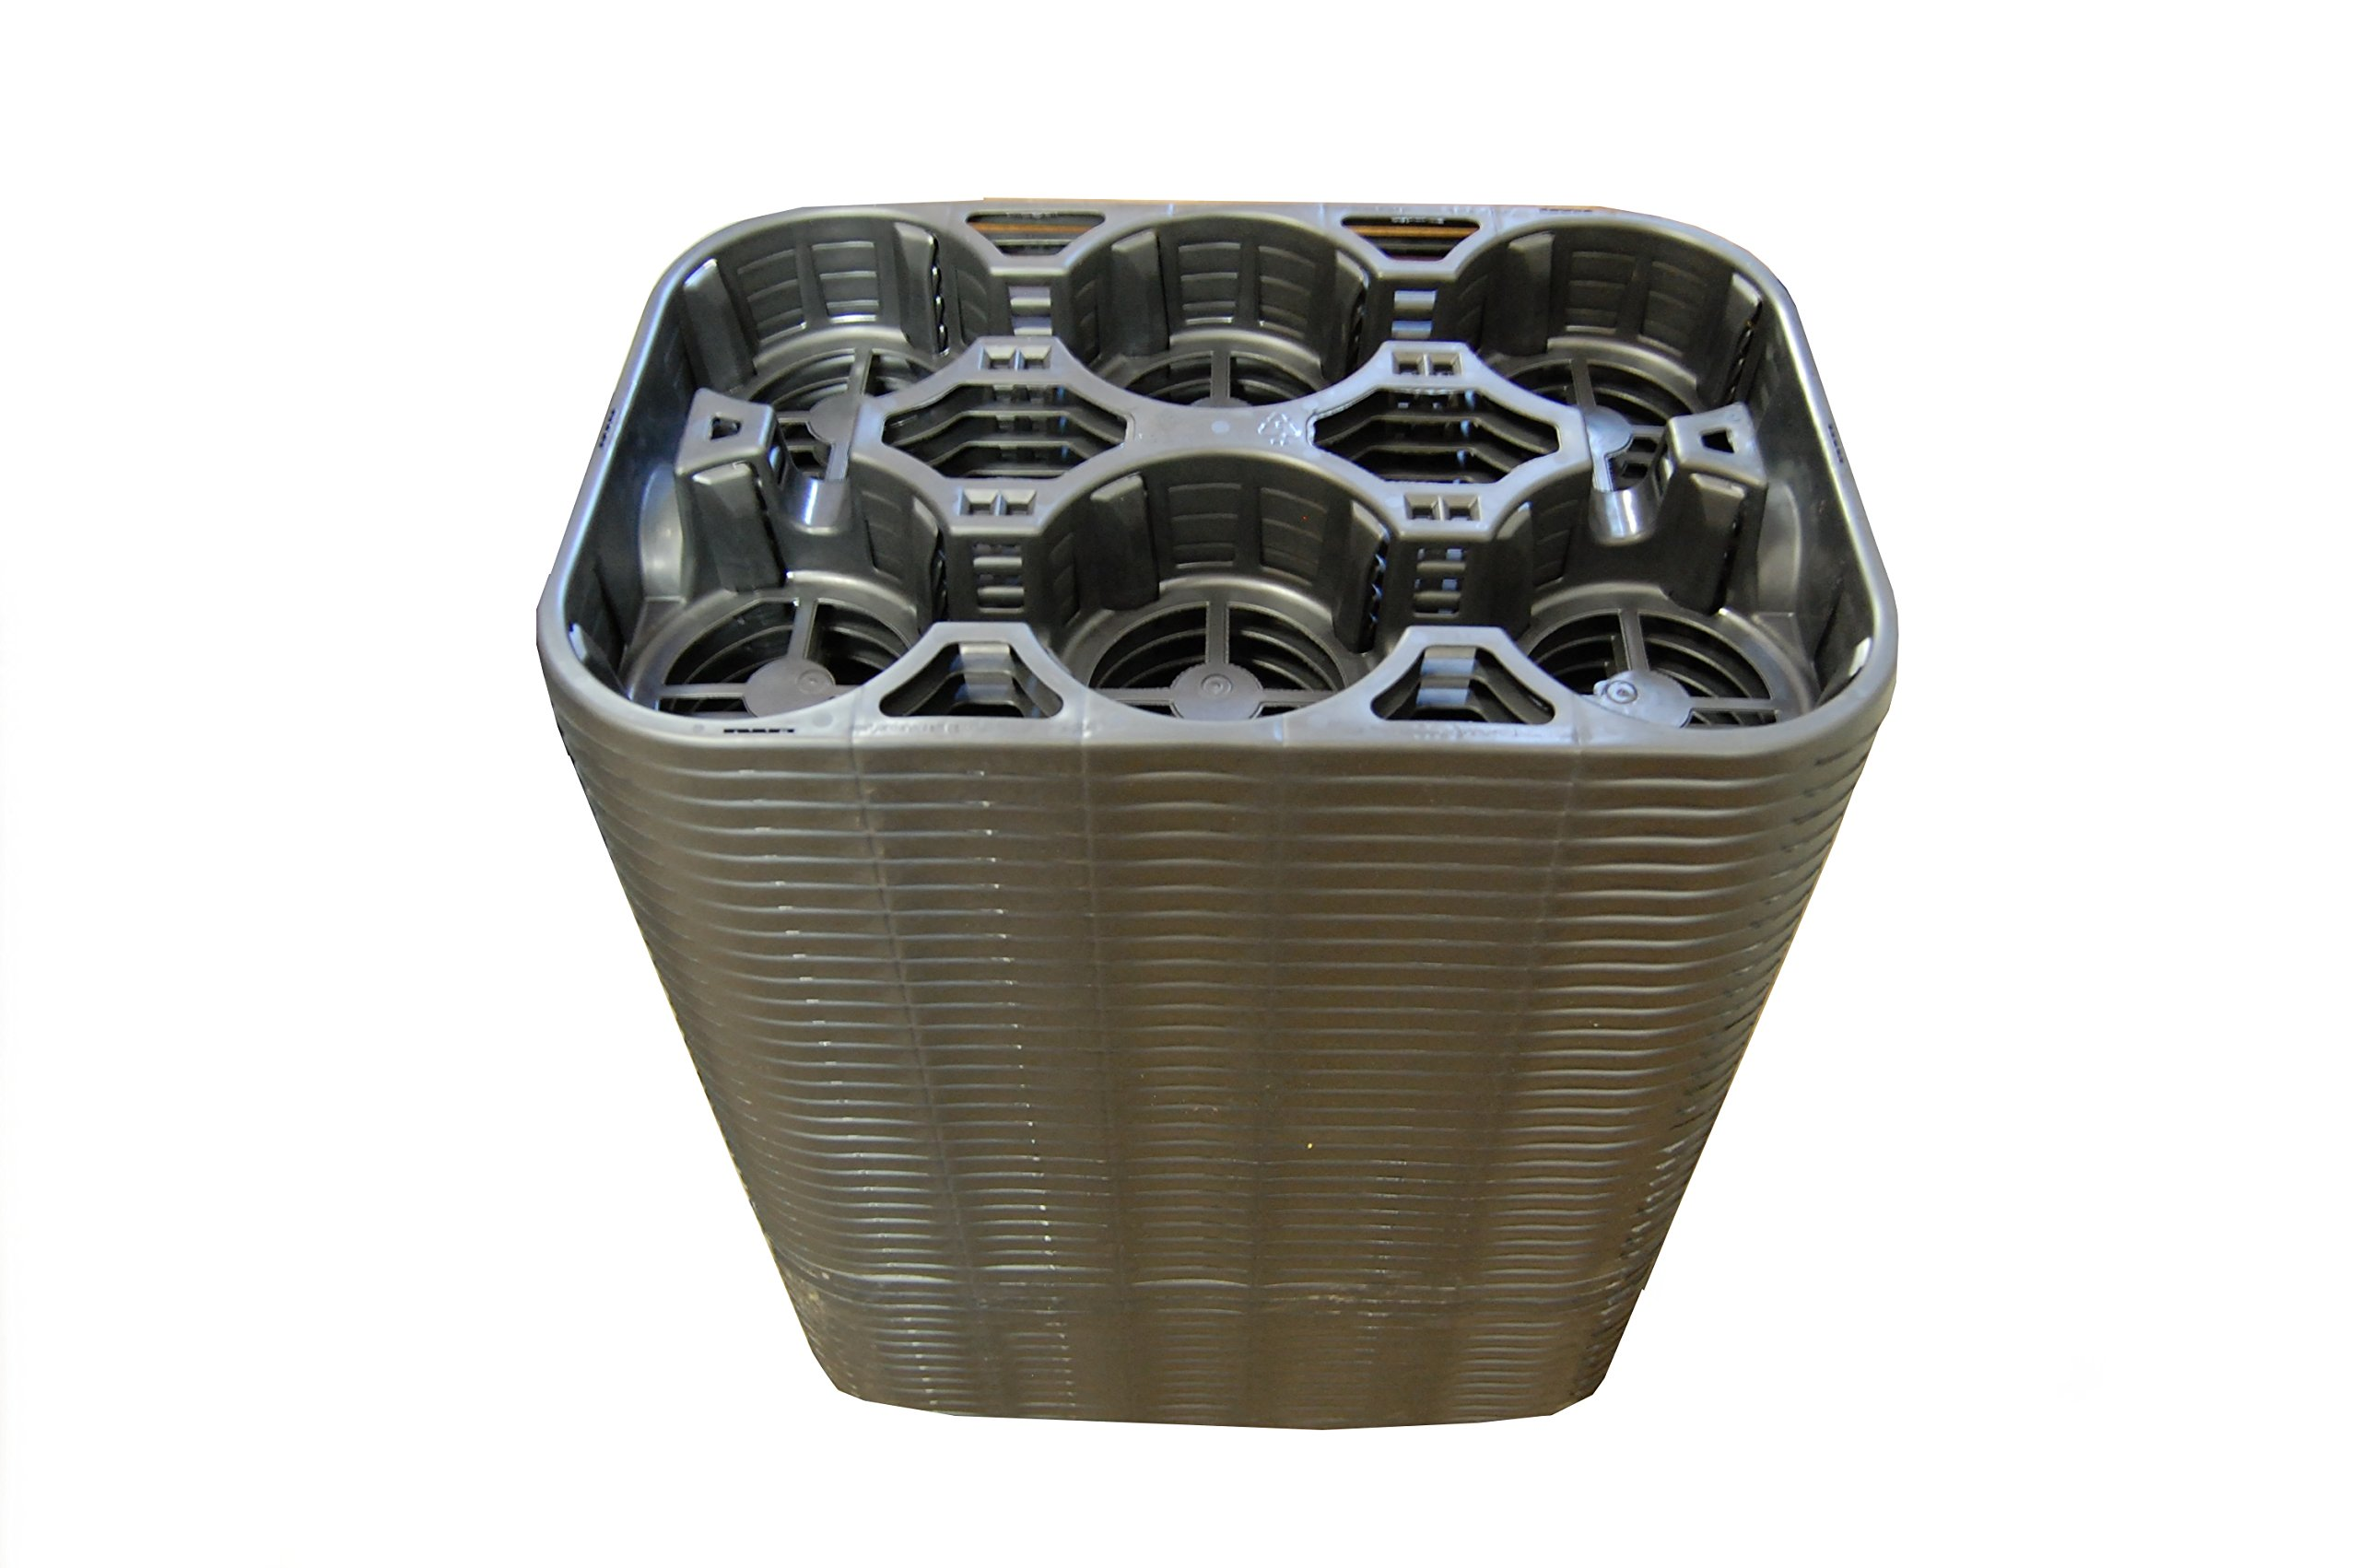 Greenhouse Carry Tray - 6 Pocket Carrier - Holds Trade Gallons & Shuttle Pots - 50 Trays by Growers Solution